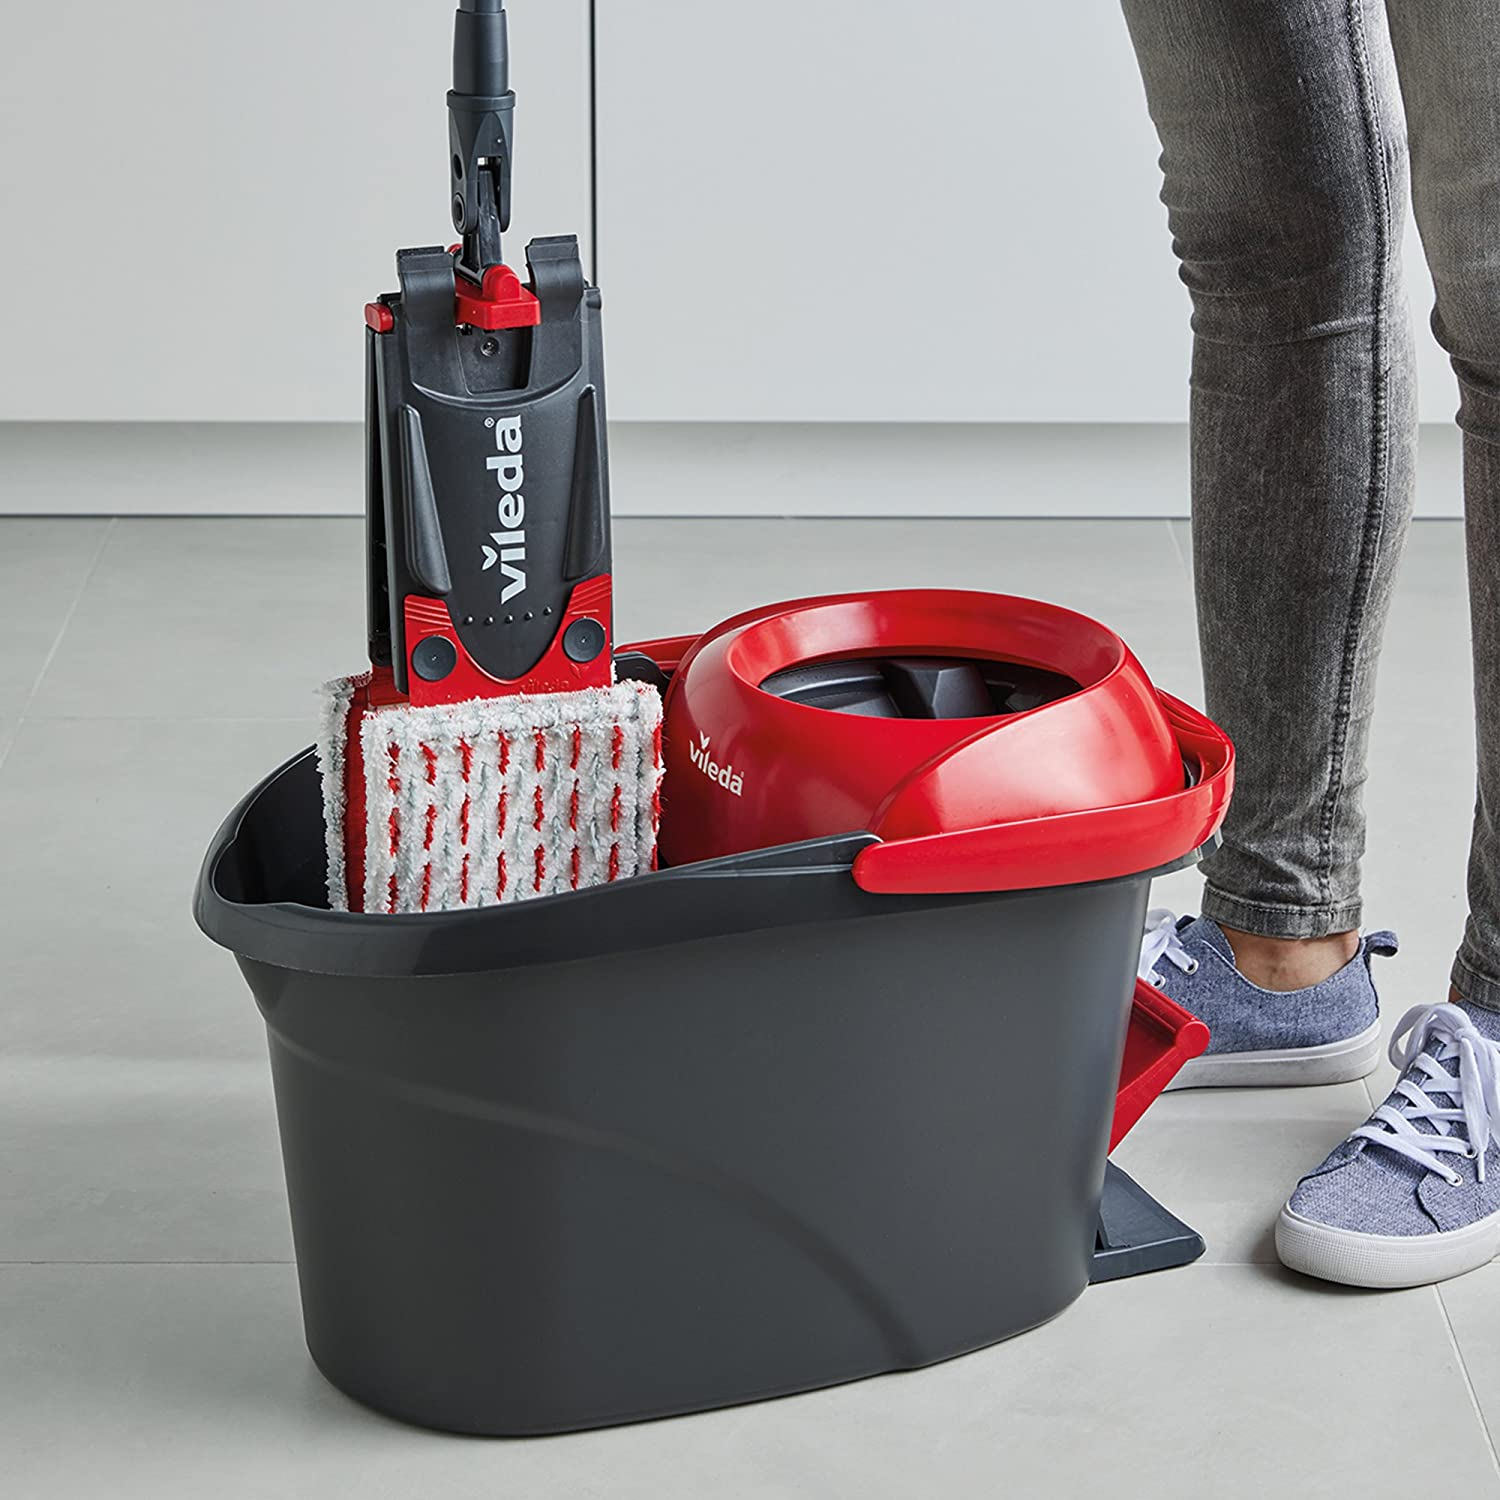 Amazon.com: Vileda Ultramat Turbo Flat Mop and Bucket Set: Kitchen & Dining